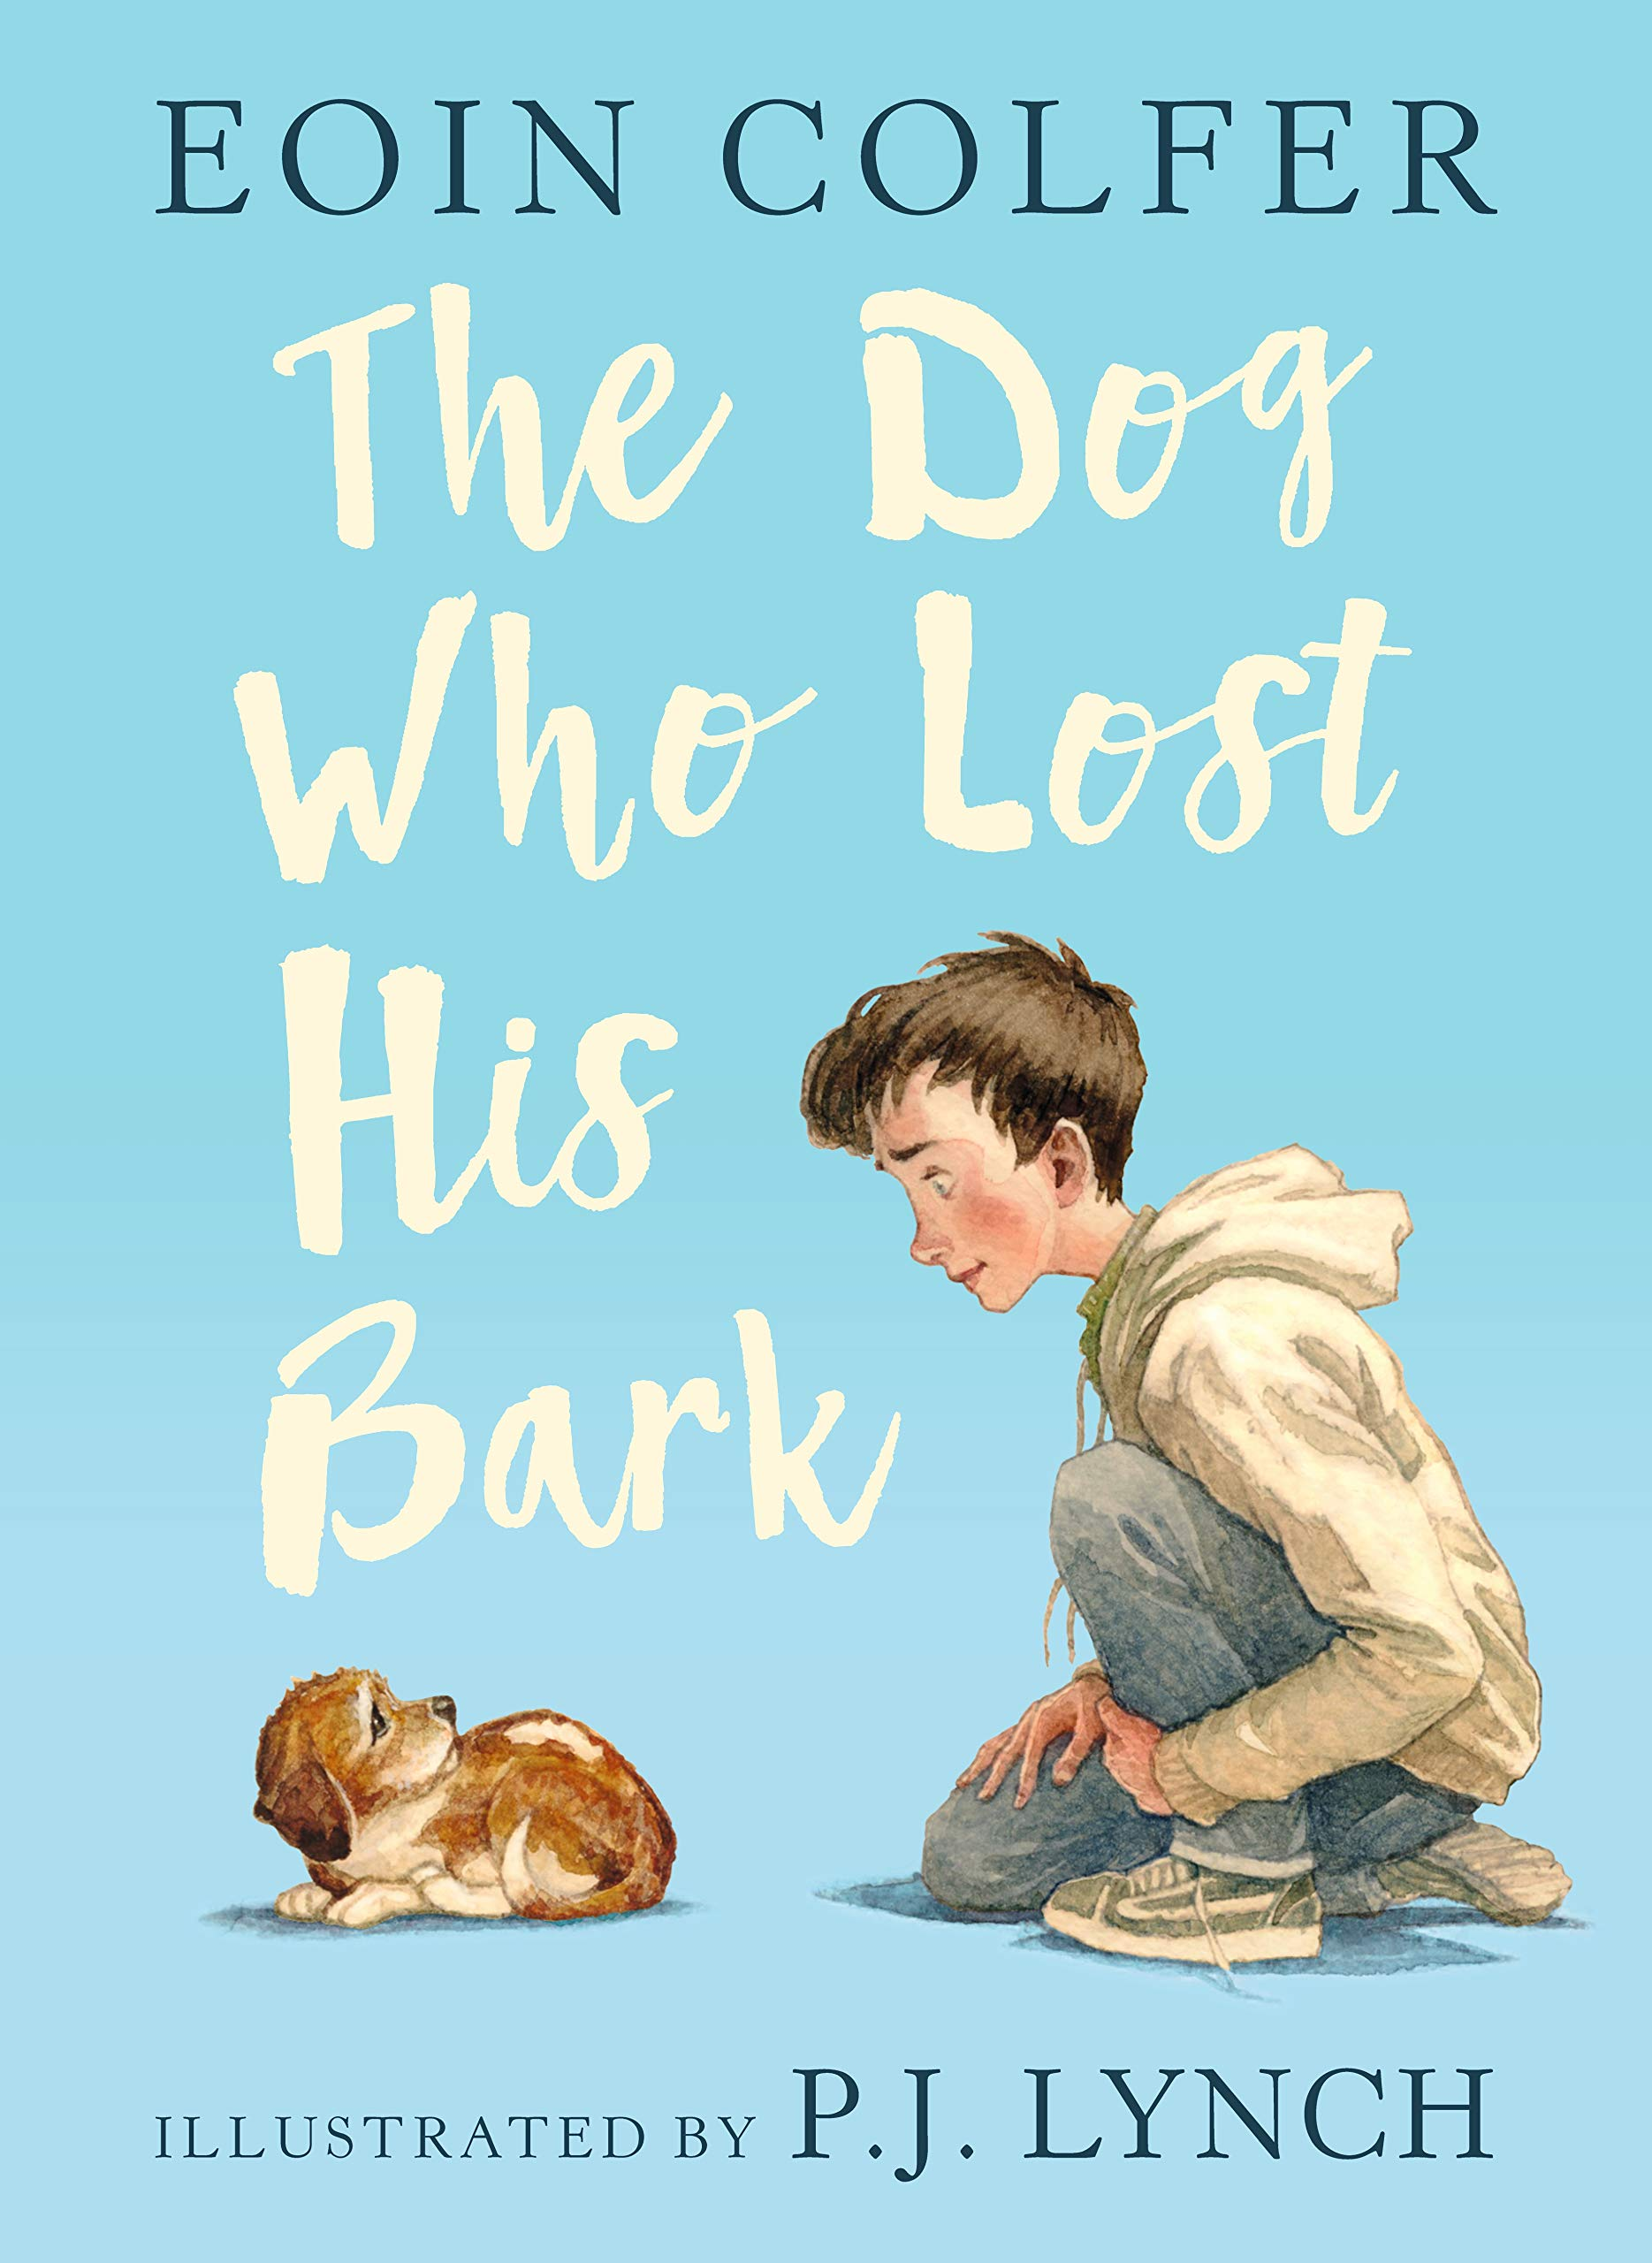 The Dog Who Lost His Bark Hardcover – 4 Oct 2018